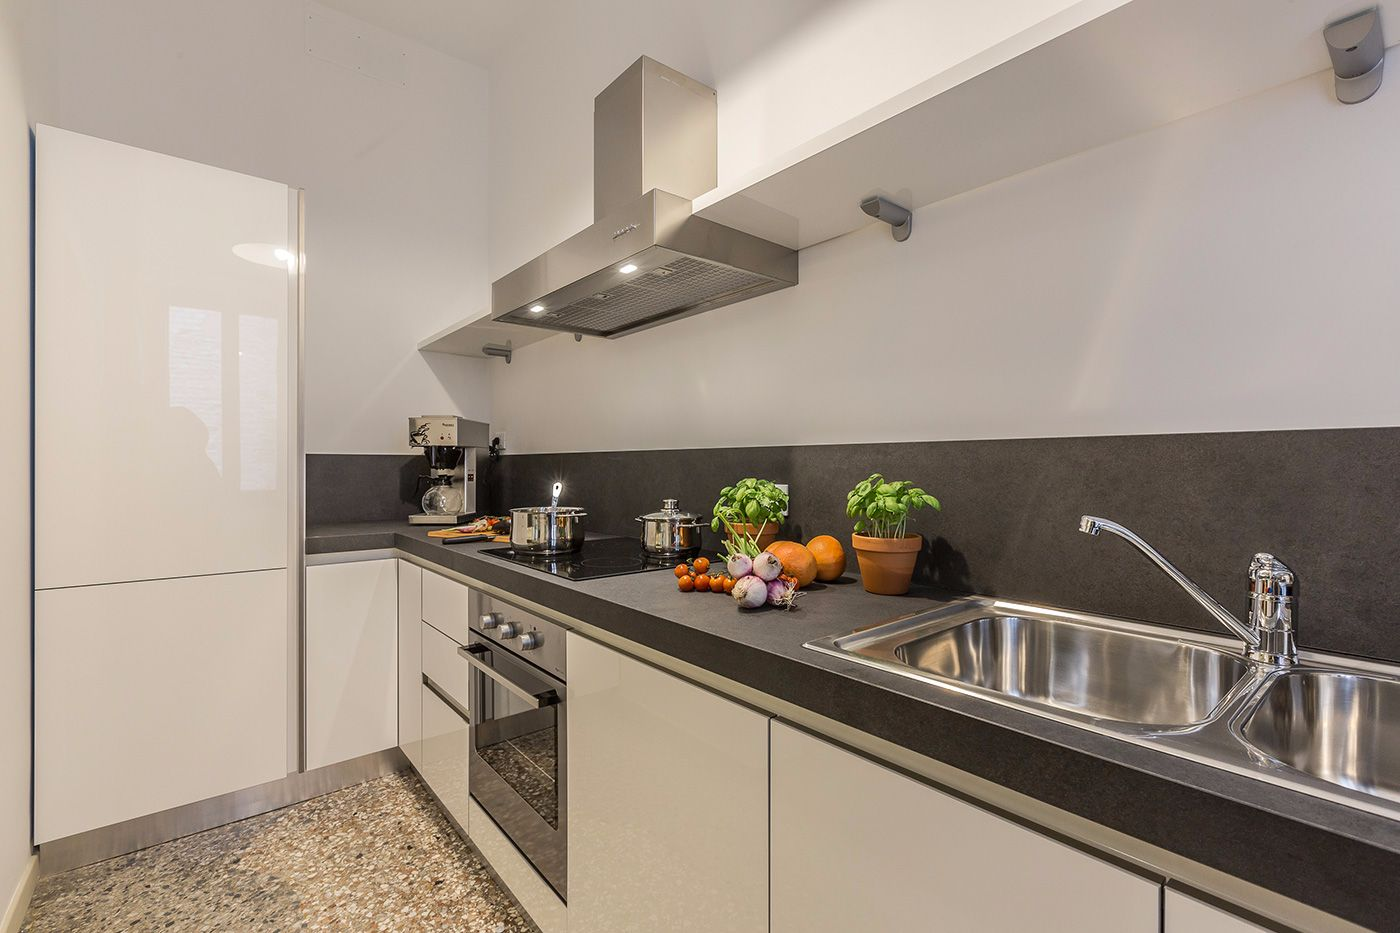 the beautiful kitchen with state-or-art appliances